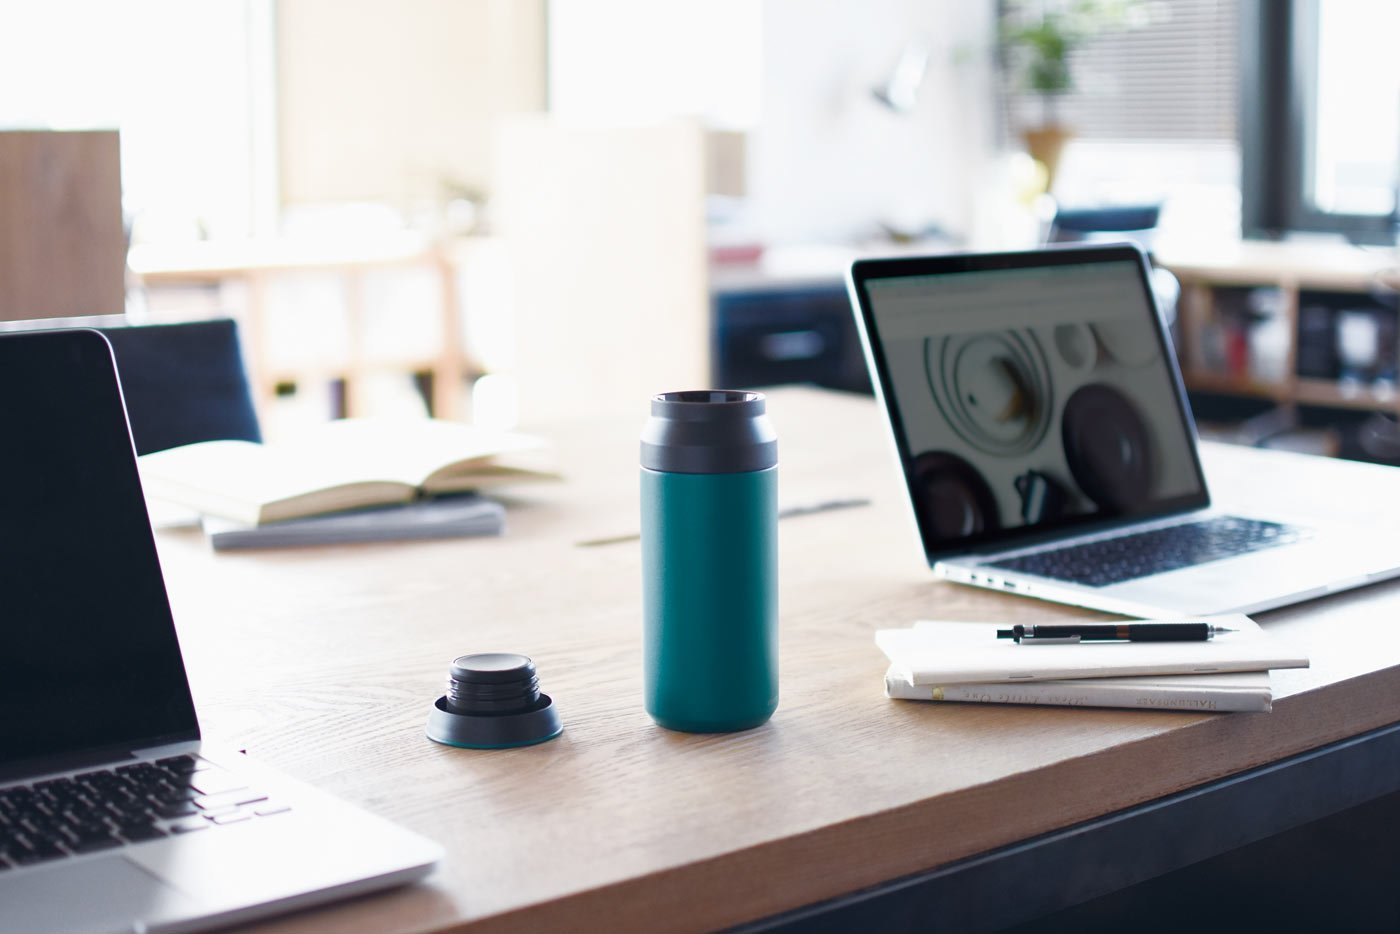 TRAVEL tumbler 500ml in turquoise on a desk with laptops